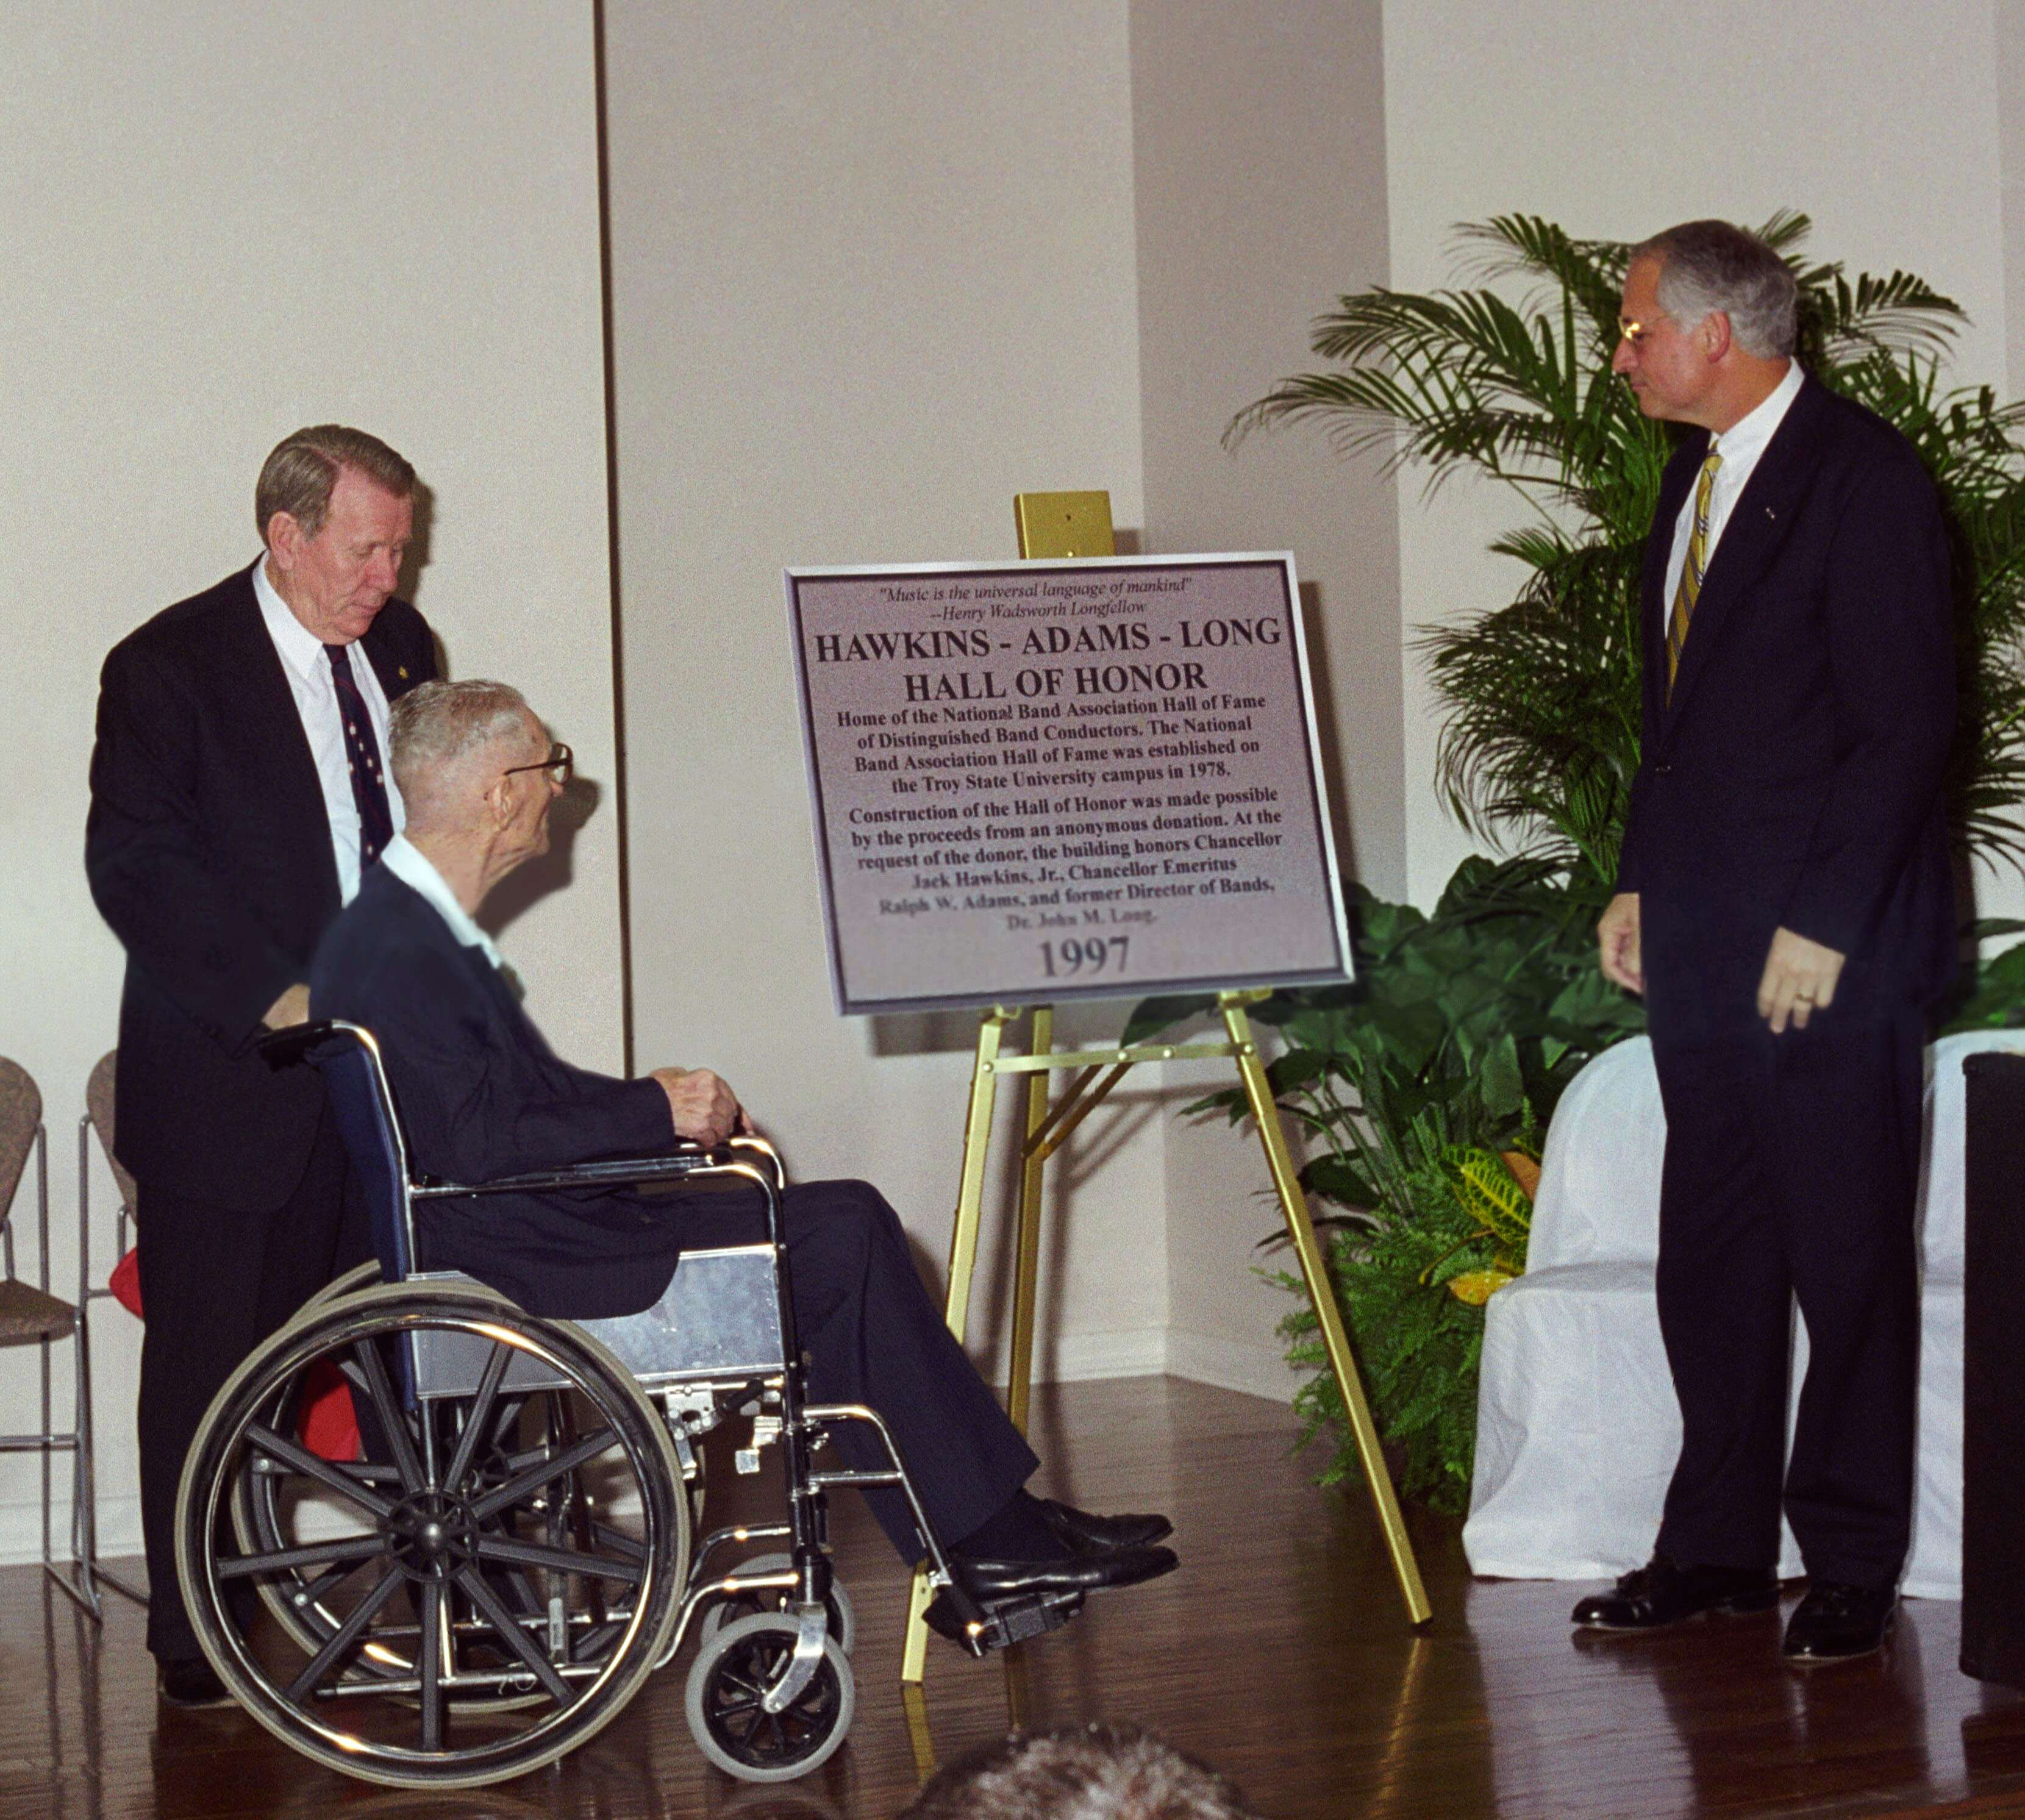 (from left) Dr. John M. Long, Dr. Ralph Wyatt Adams and Dr. Jack Hawkins, Jr., read the dedicatory plaque during ceremonies at the new Hawkins-Adams-Long Hall of Honor in 1997.